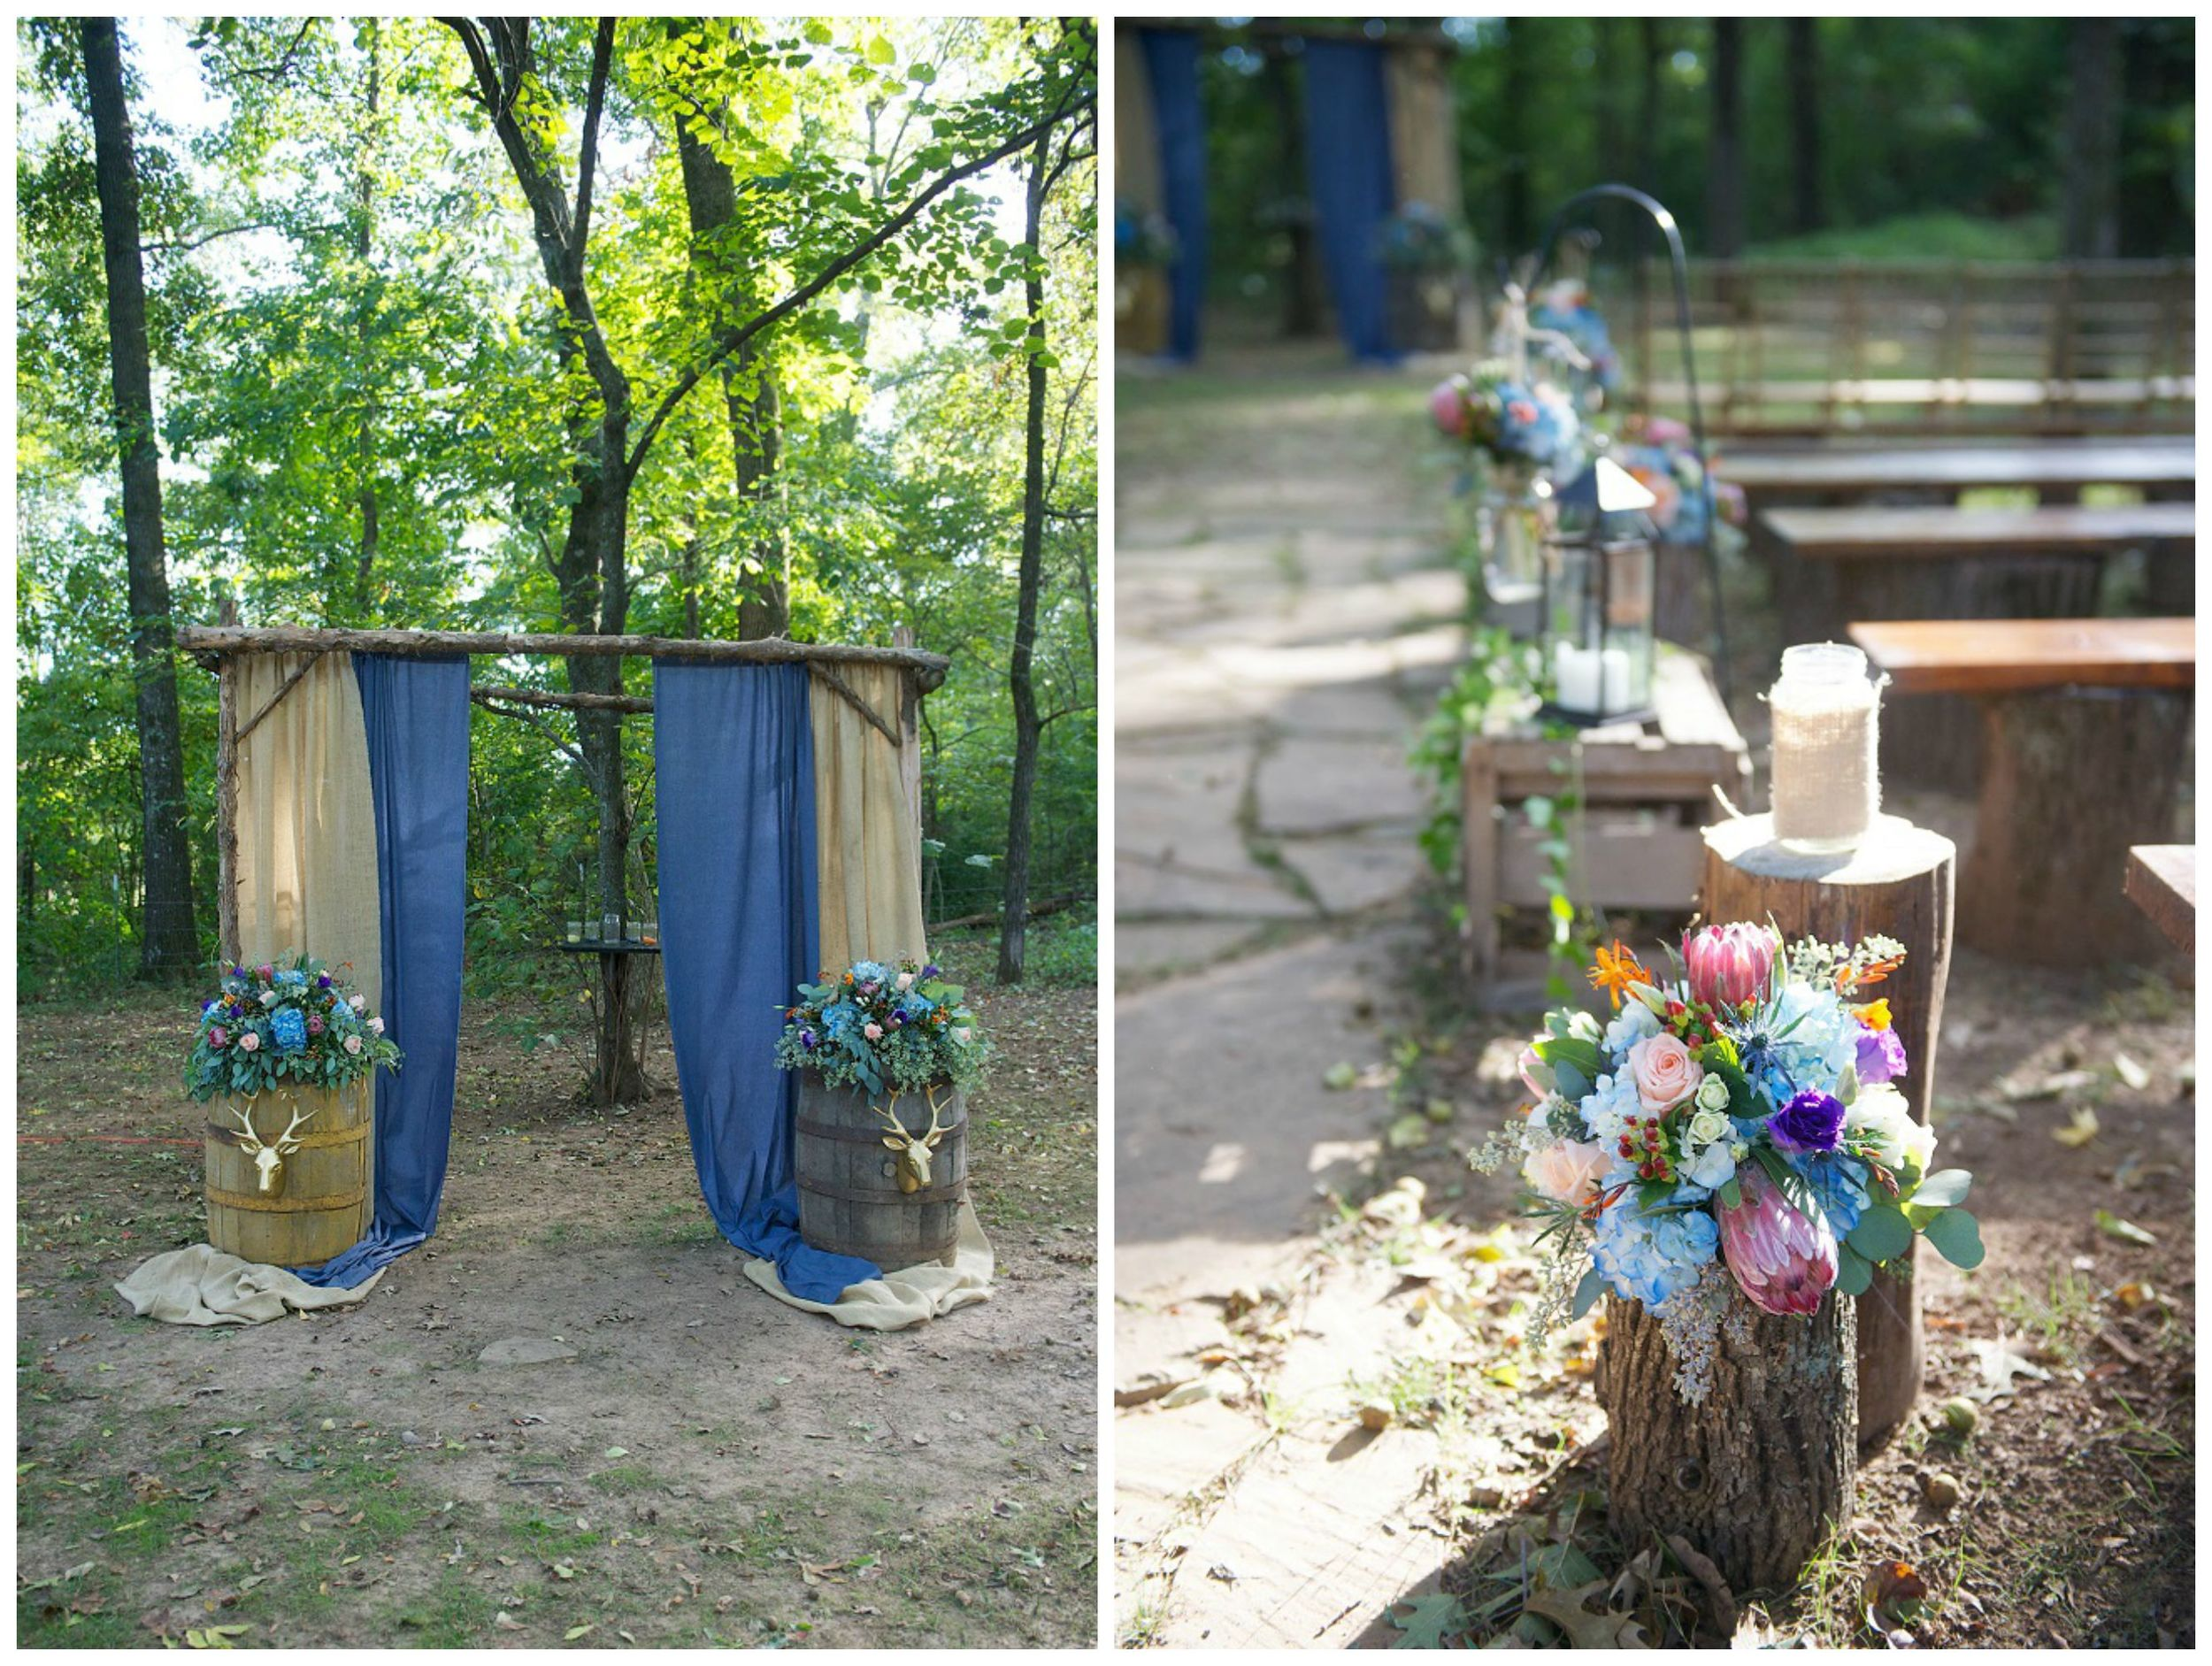 Danielle Davis Art/Photography , from Emily + Blake's wedding at The Barn. Burlap and chambray, barrels, logs and wooden crates... this wedding was perfect for fall, without a super fall-ish color scheme!